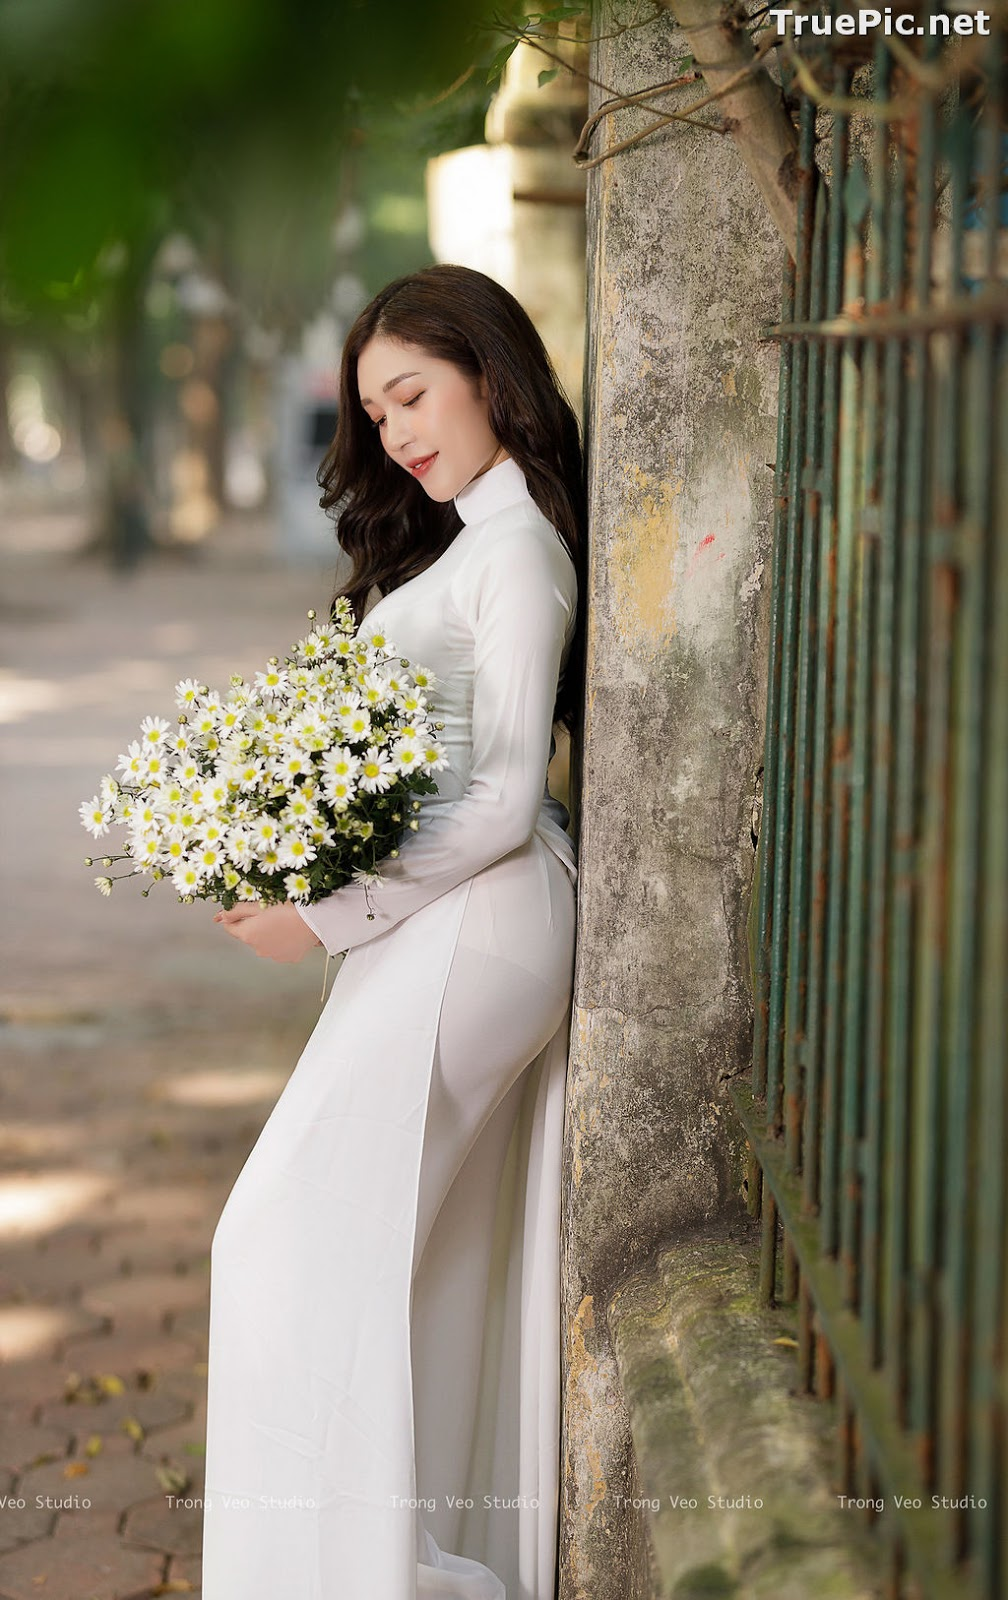 Image The Beauty of Vietnamese Girls with Traditional Dress (Ao Dai) #1 - TruePic.net - Picture-5